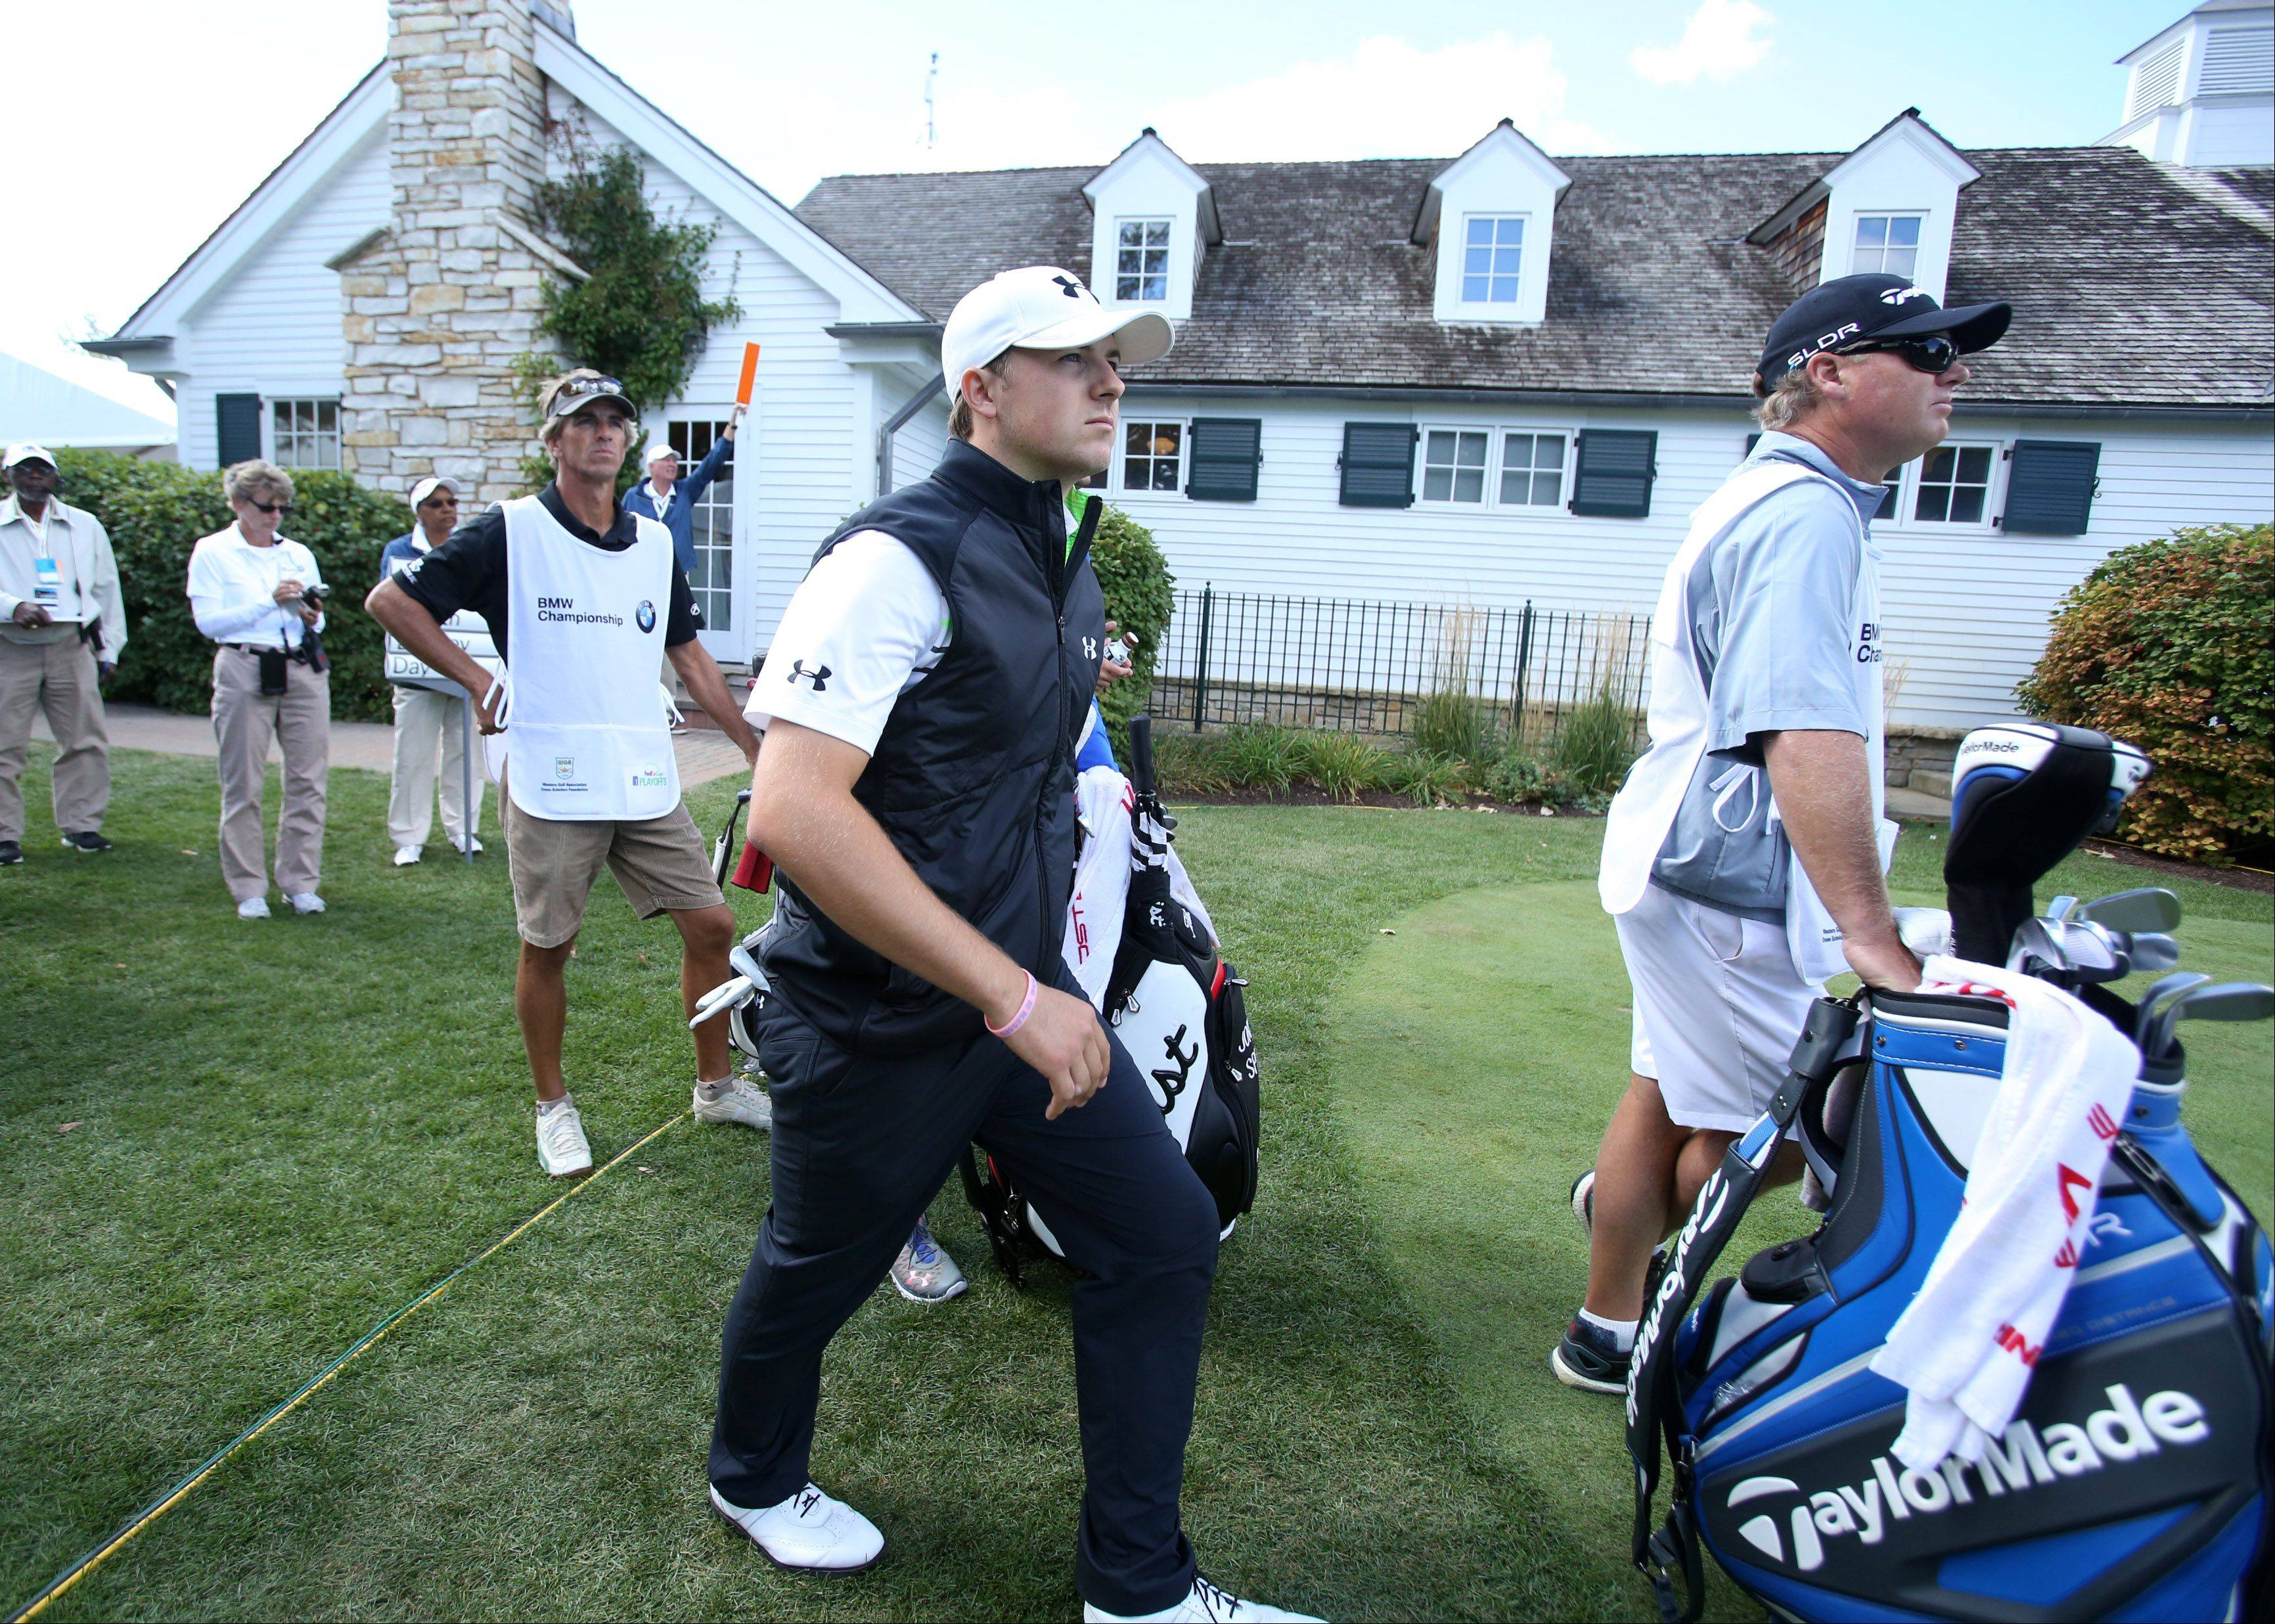 Jordan Spieth walks to the fairway after teeing off on the 3rd hole.